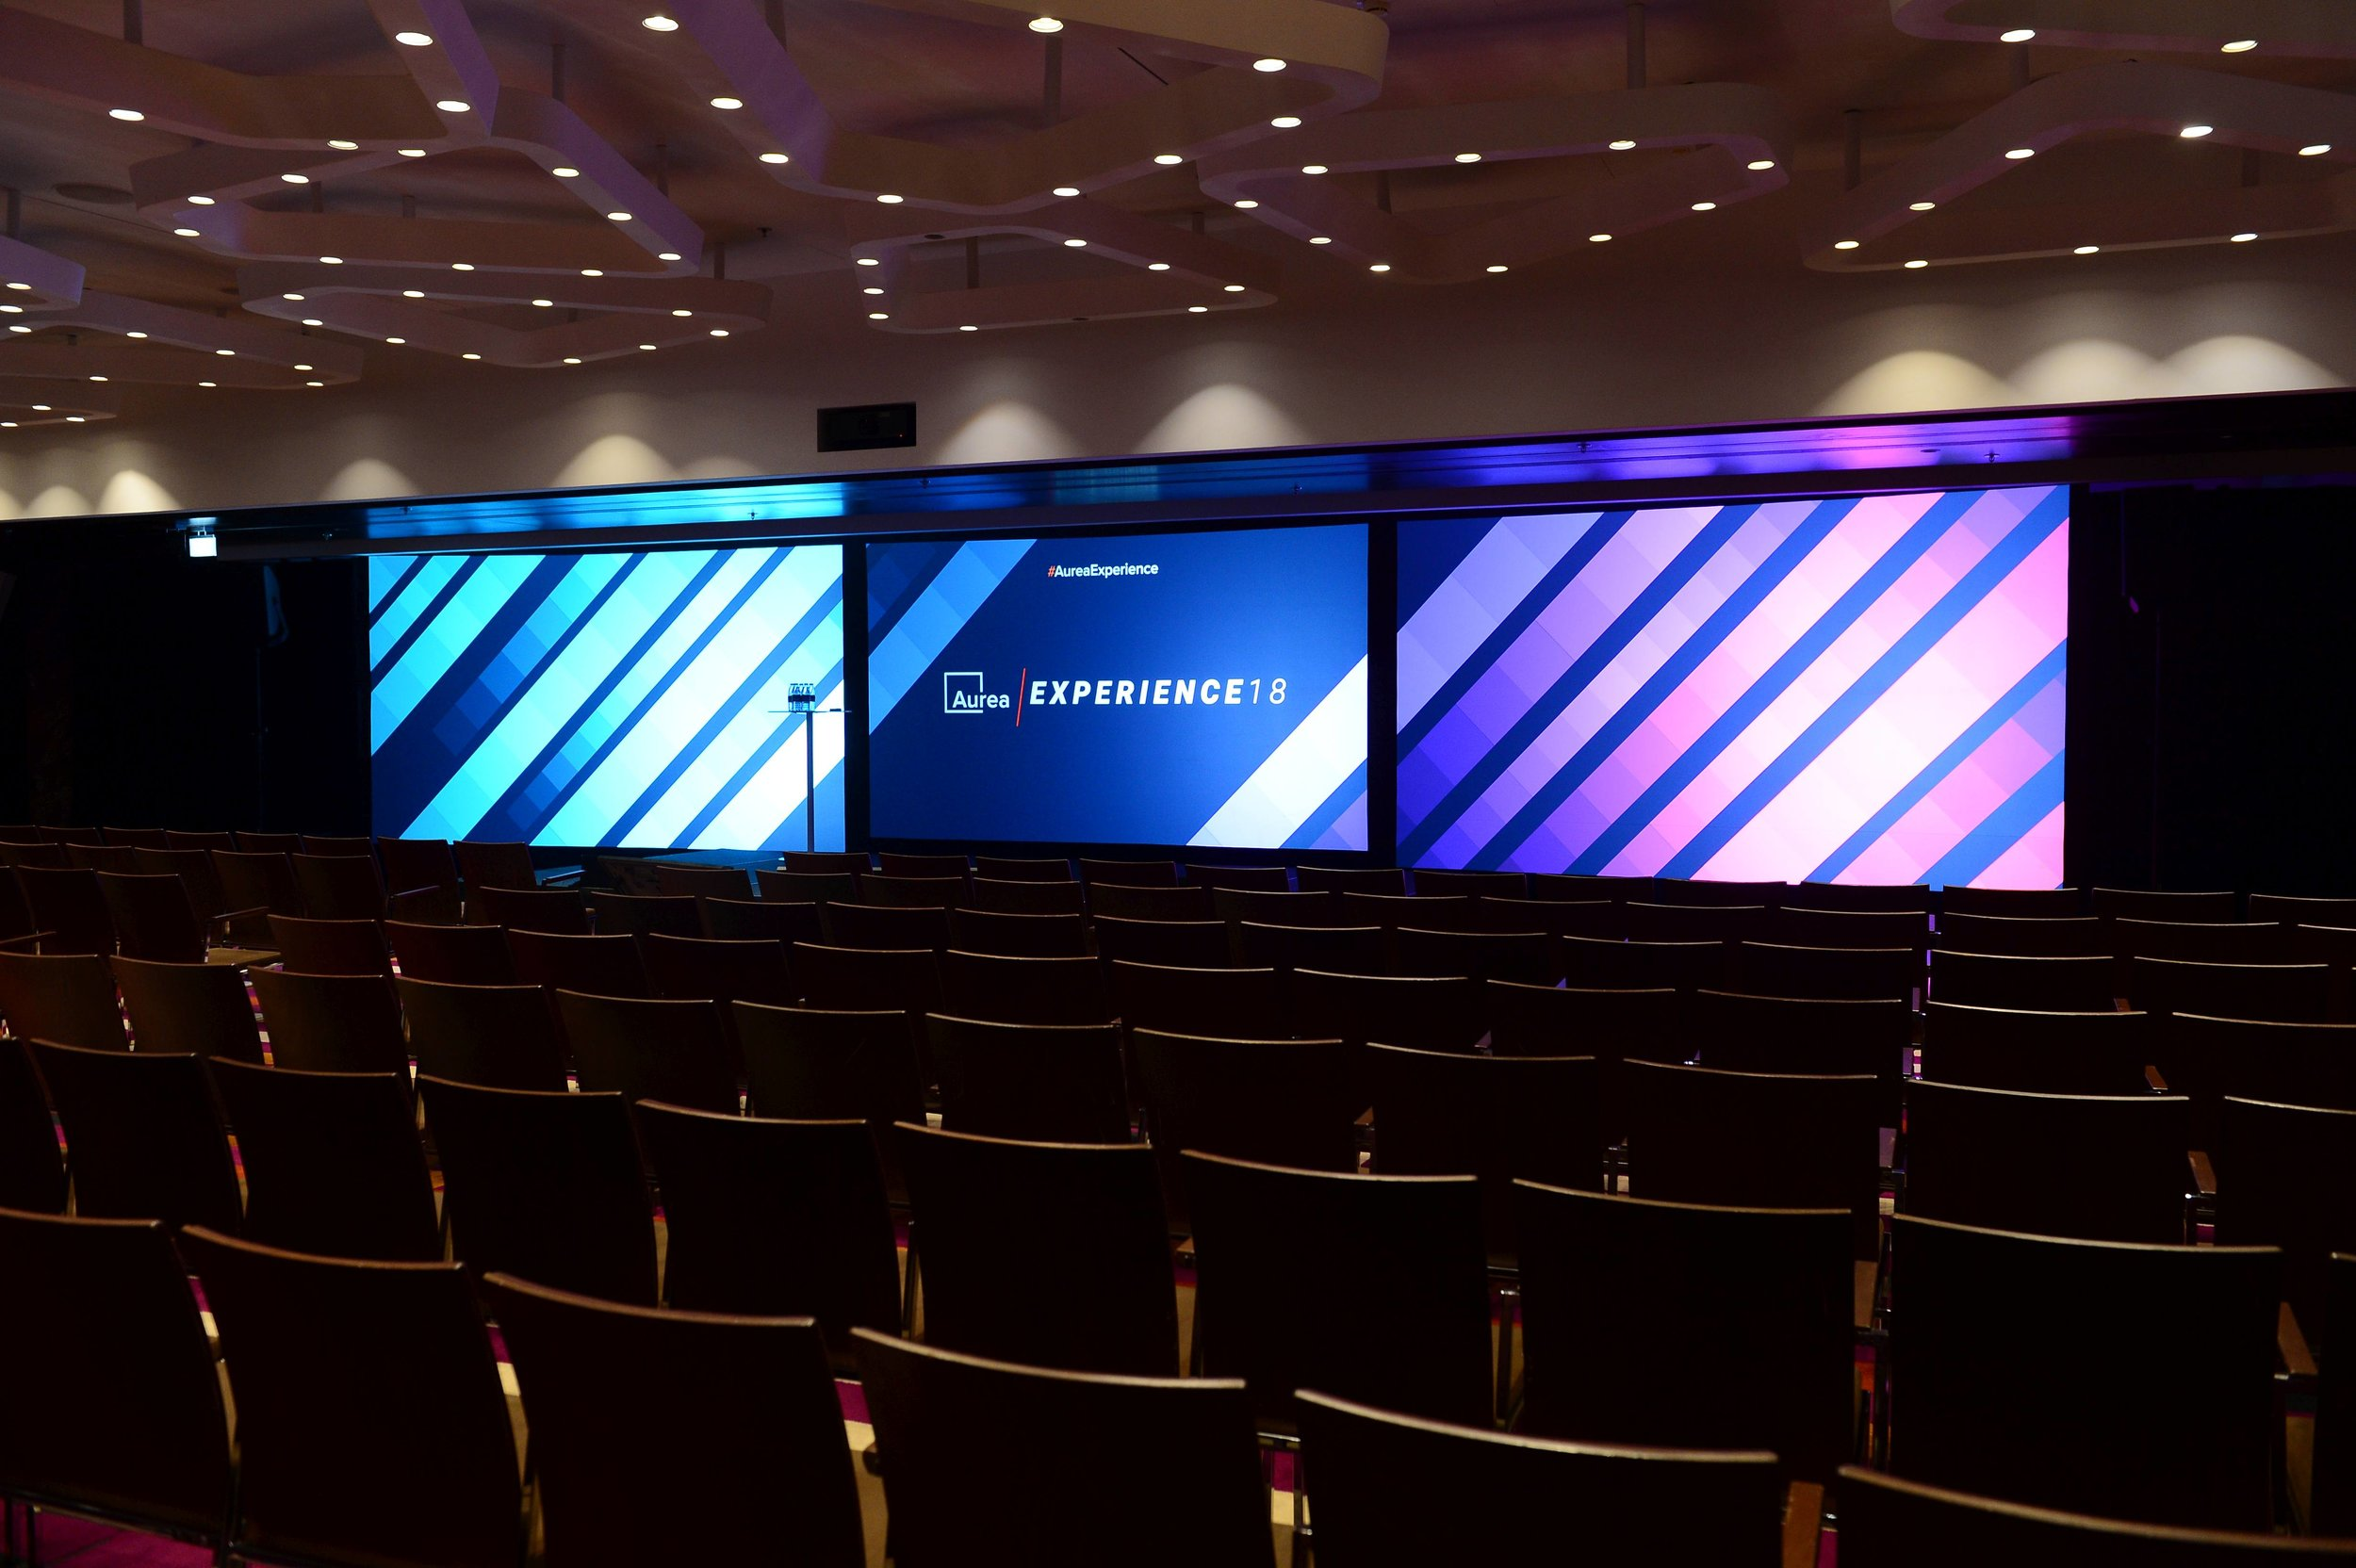 3 Projection Screens